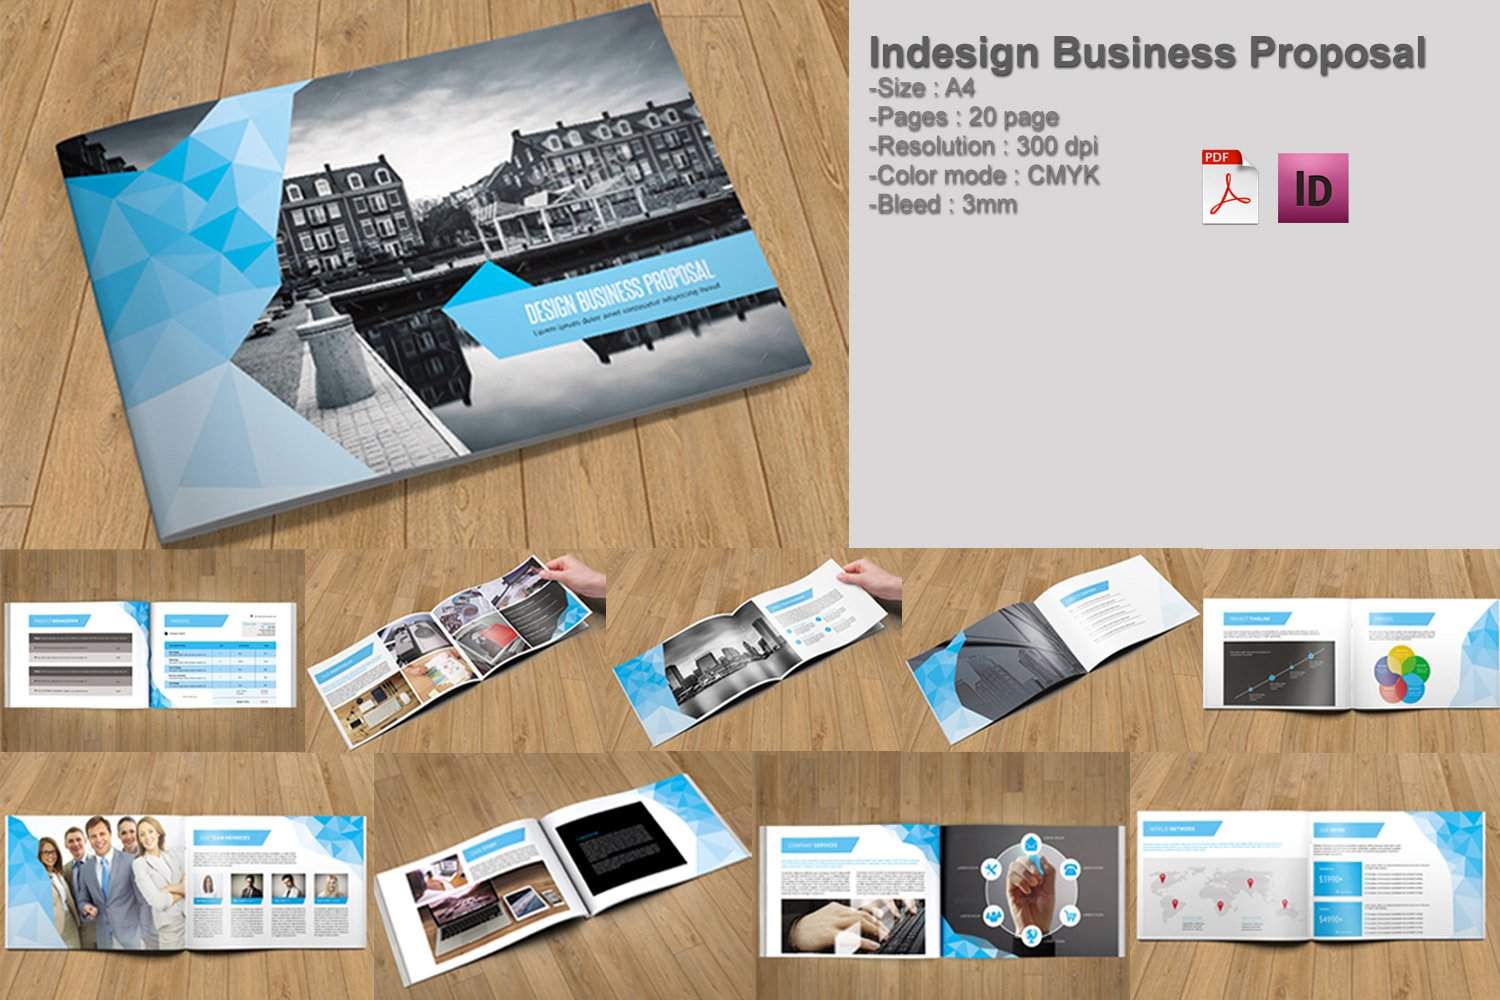 Indesign business proposal v213 brochure templates creative market flashek Image collections